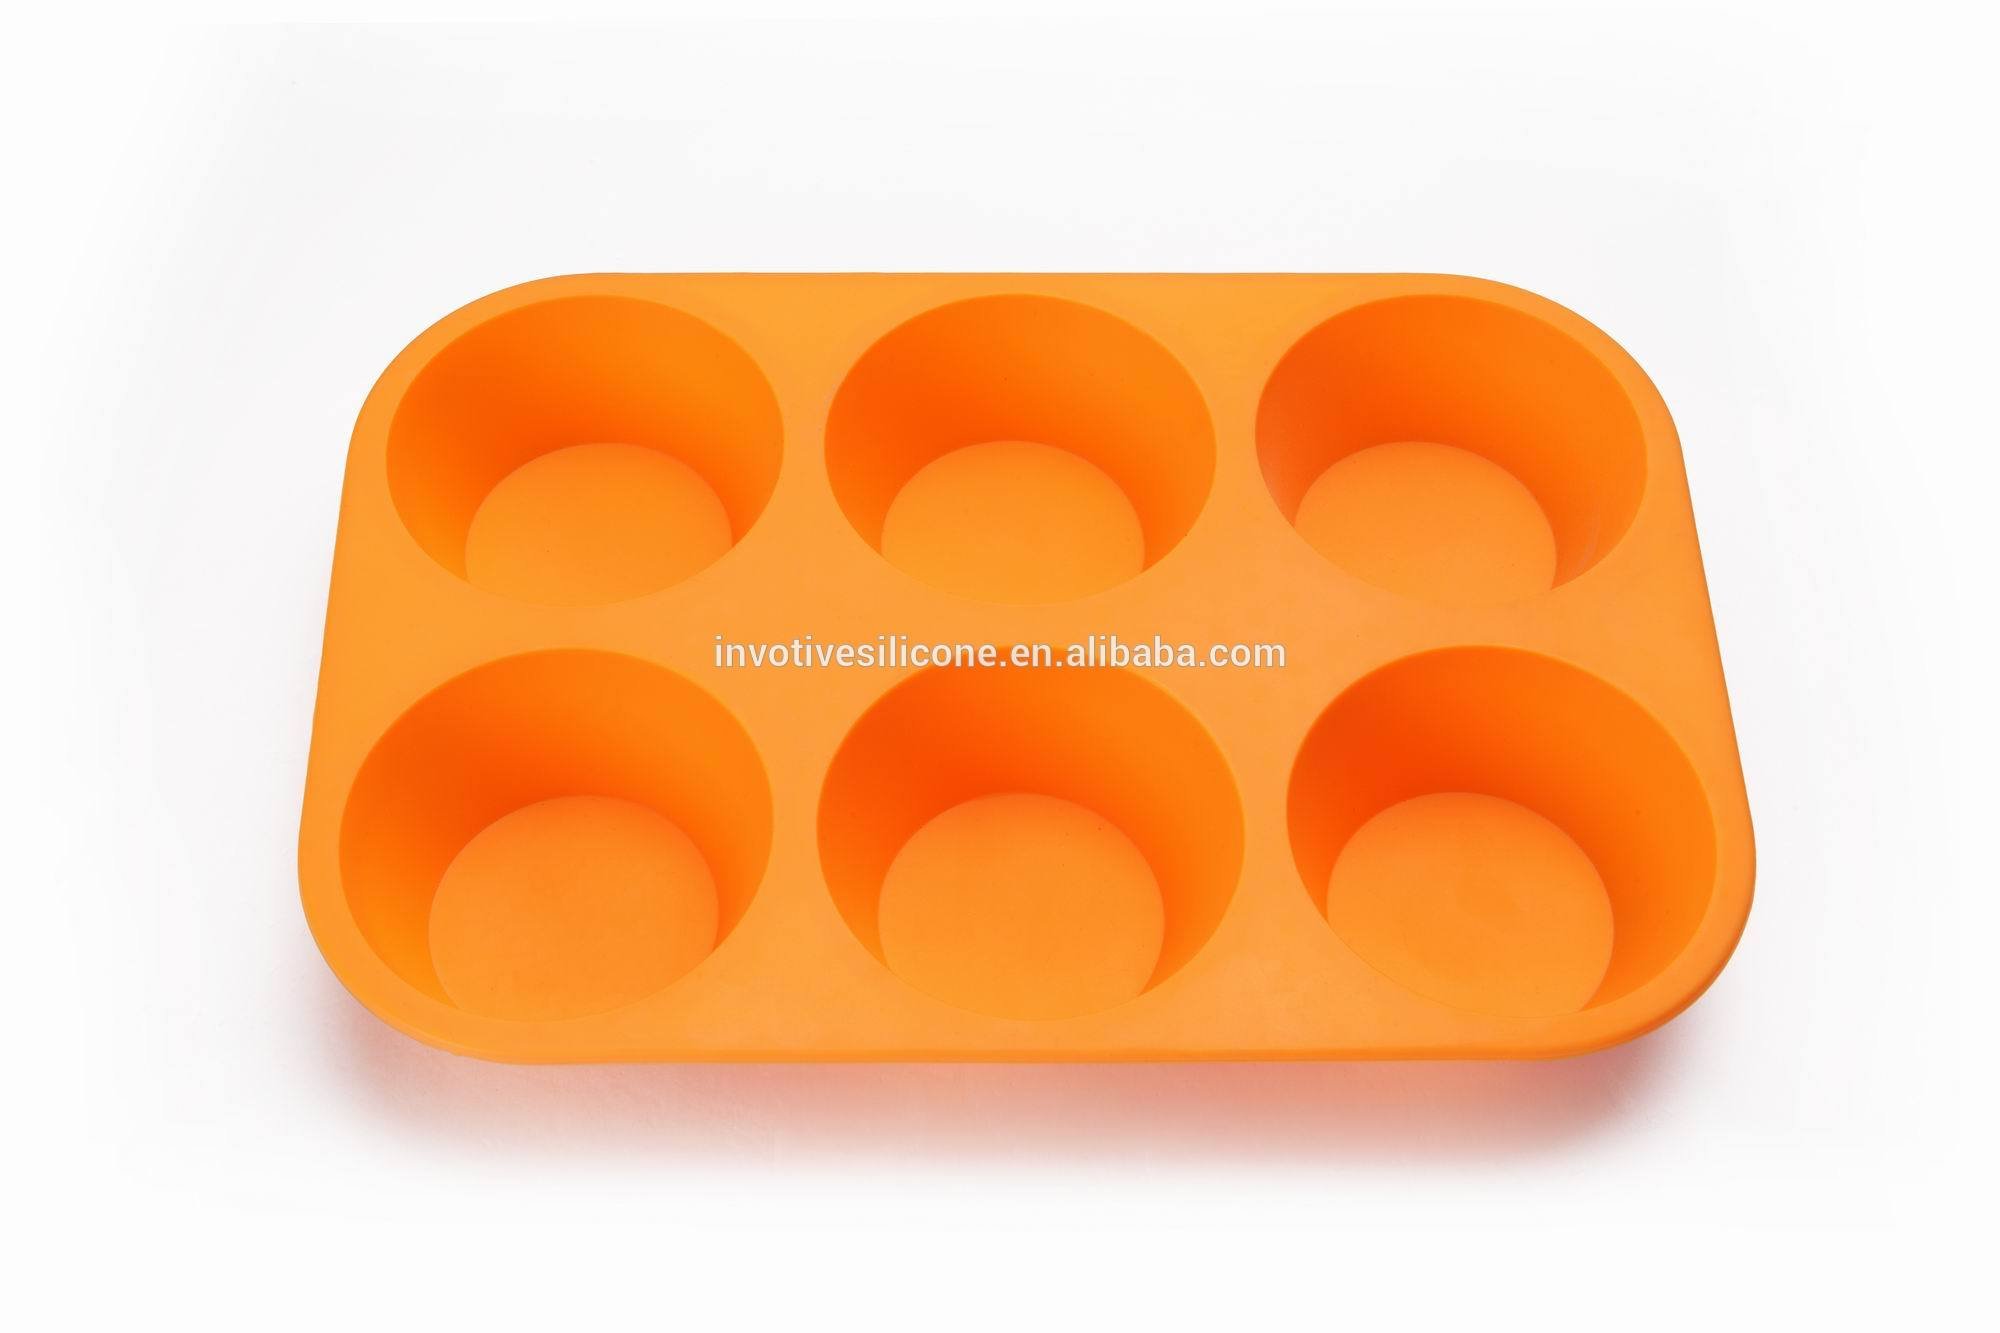 BSCI Factory Silicone non-stick 24 cups cake moulds 12 cups 6 cups muffin baking pan bakeware sets